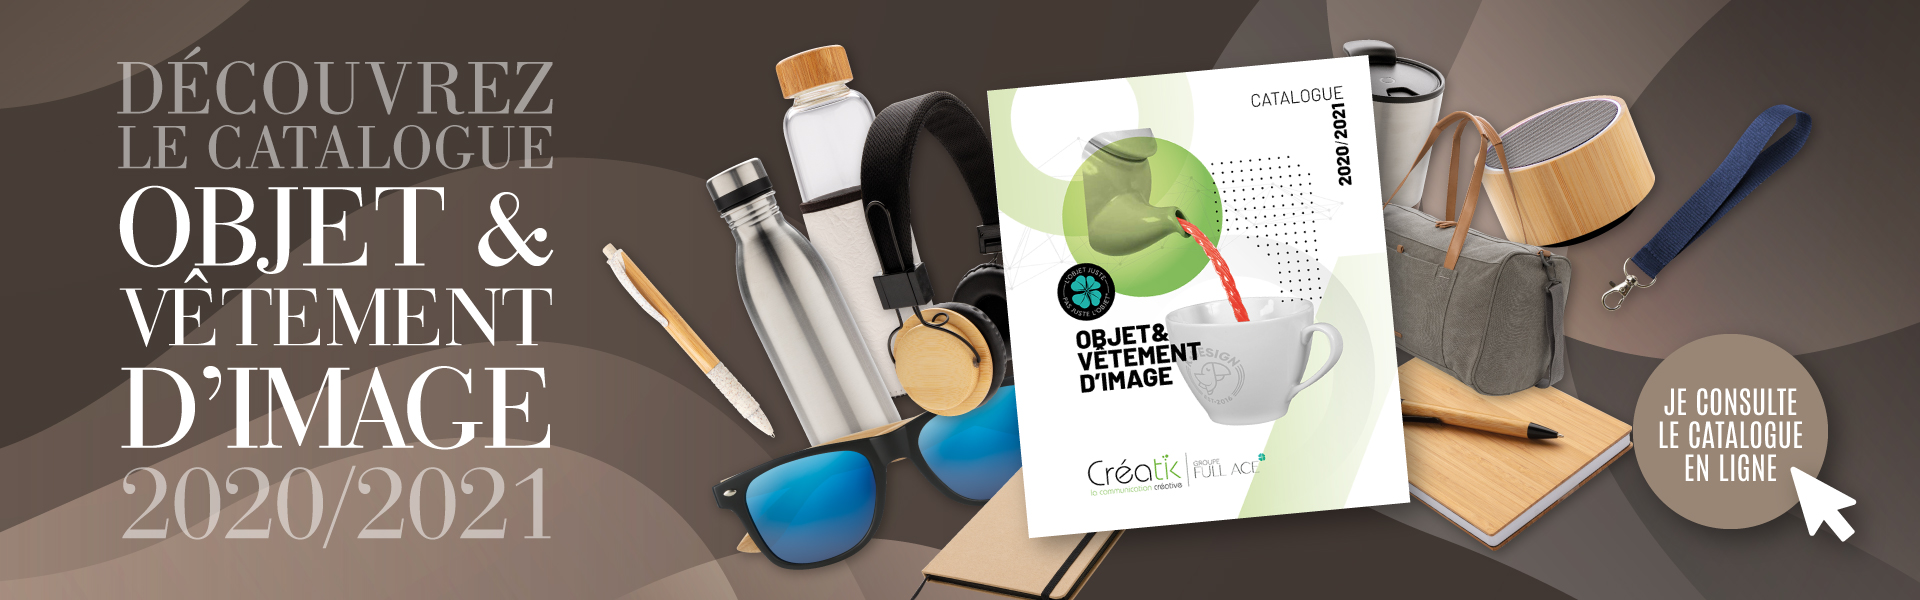 Catalogue Creatik 2020